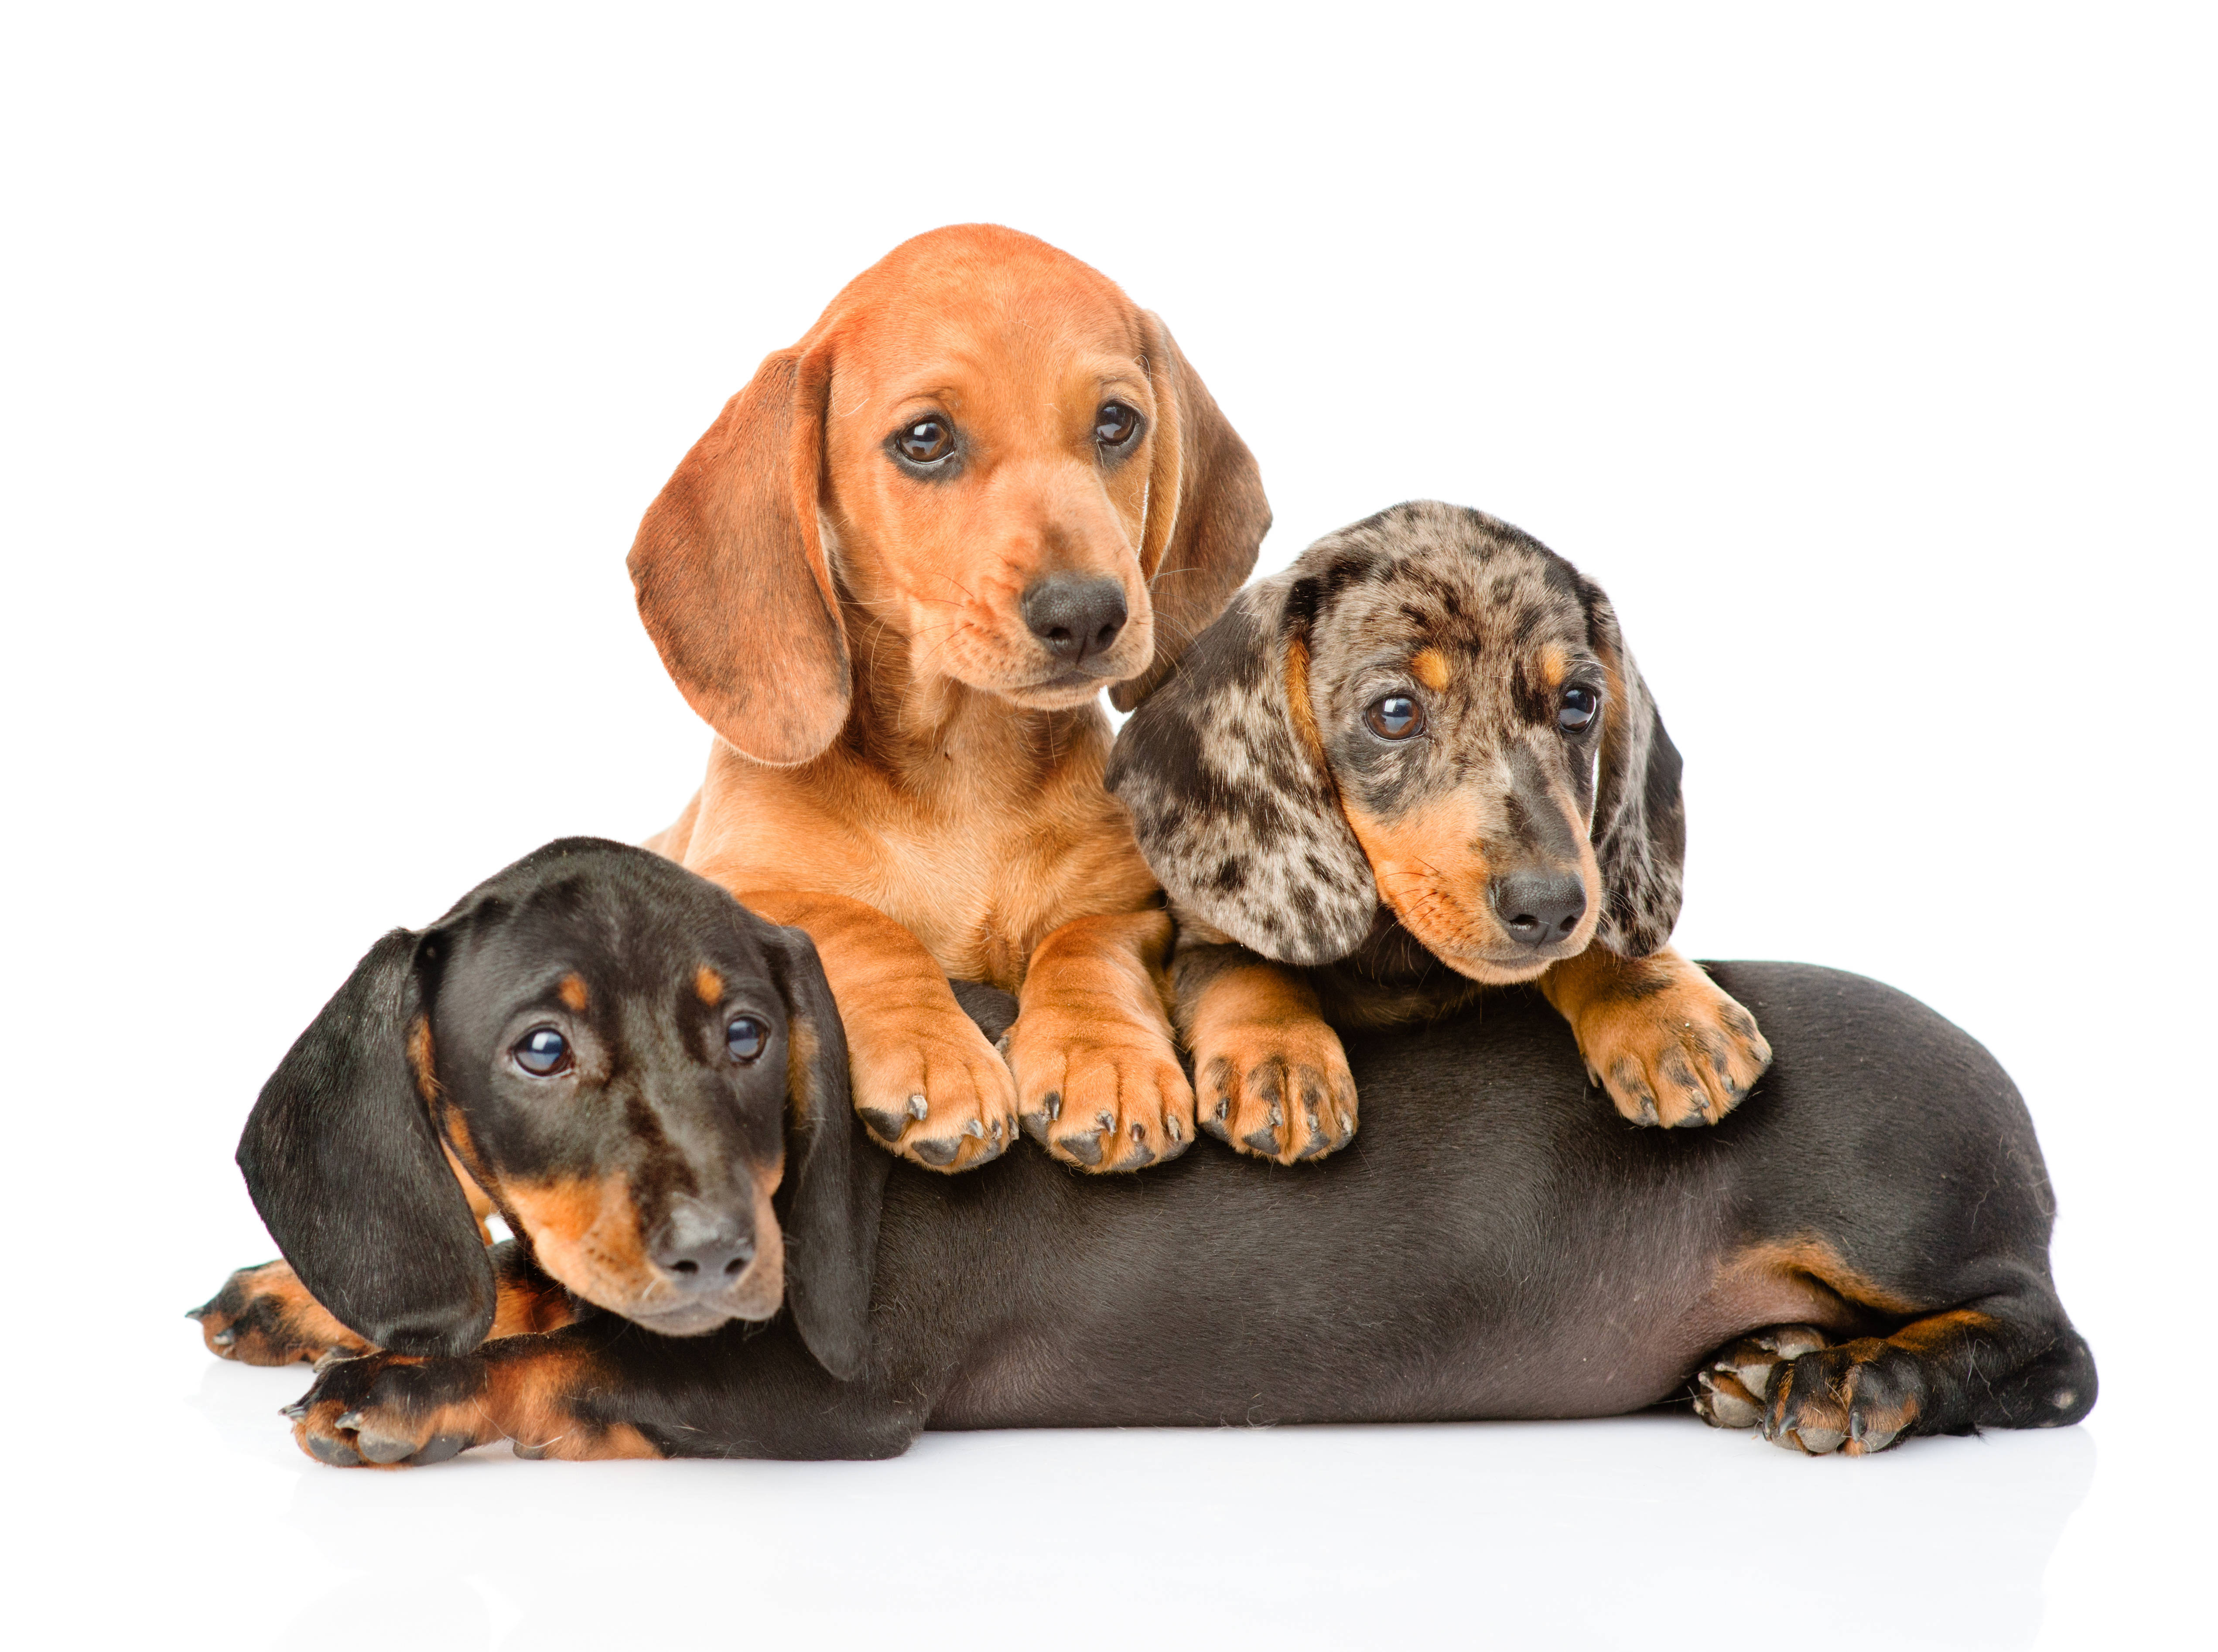 Three Dachshunds in front of a white background